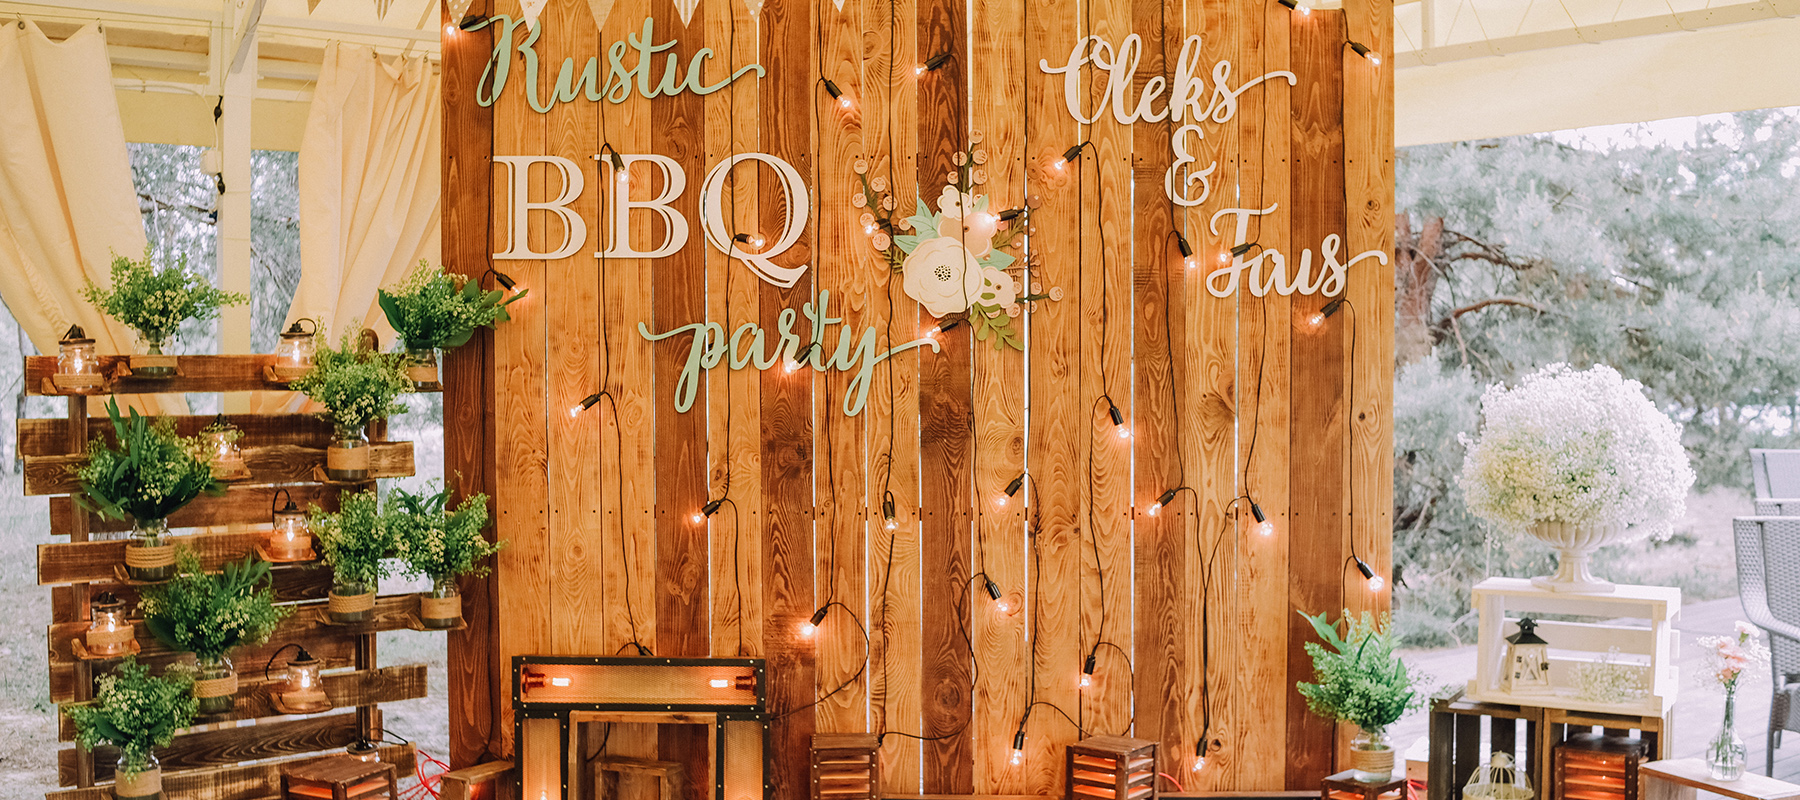 RUSTIC BBQ PARTY